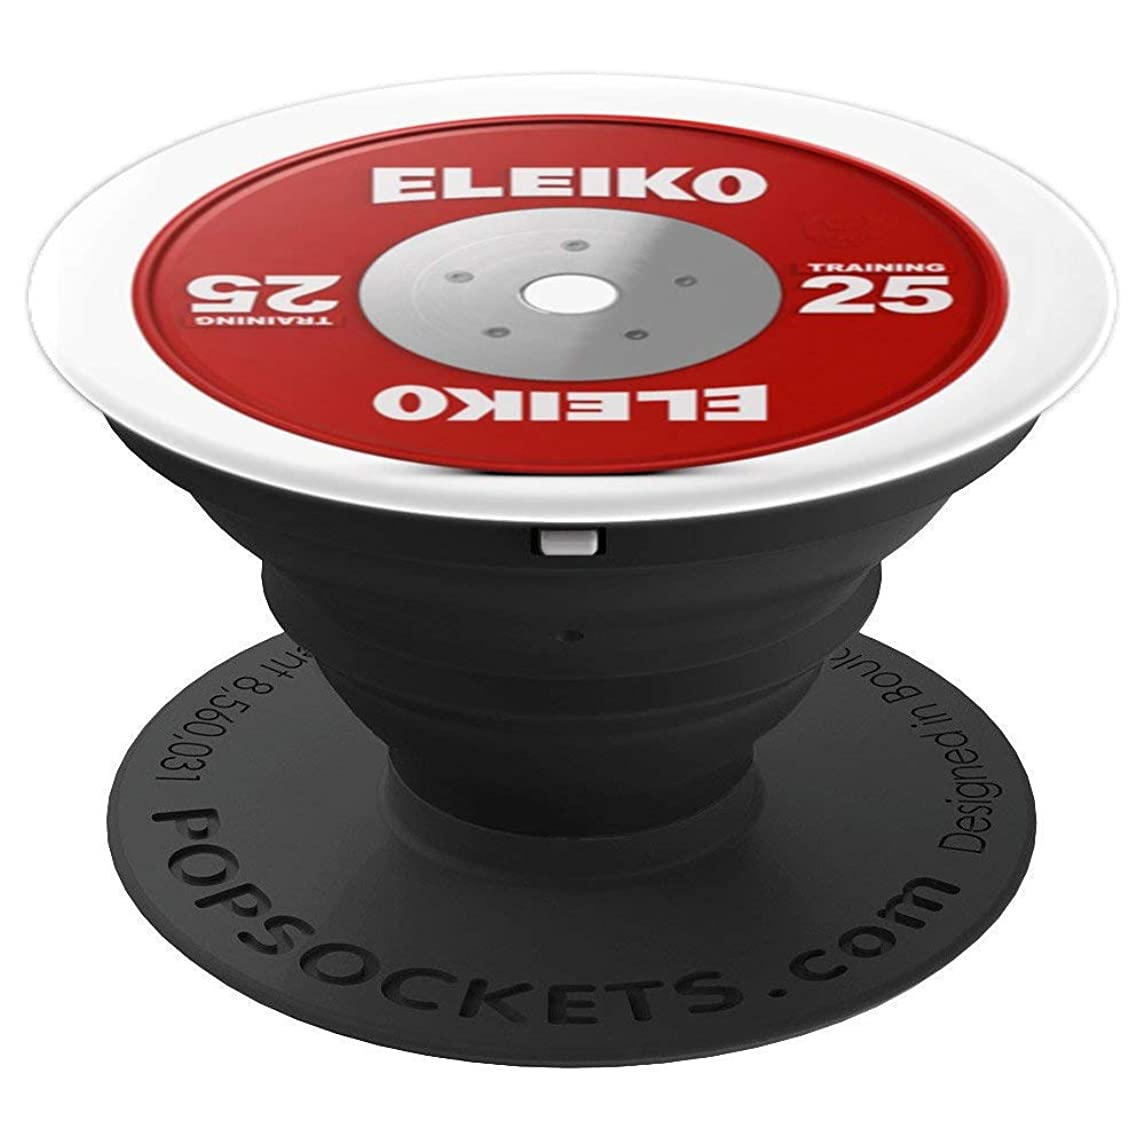 Eleiko Kilo Plate pop socket - PopSockets Grip and Stand for Phones and Tablets